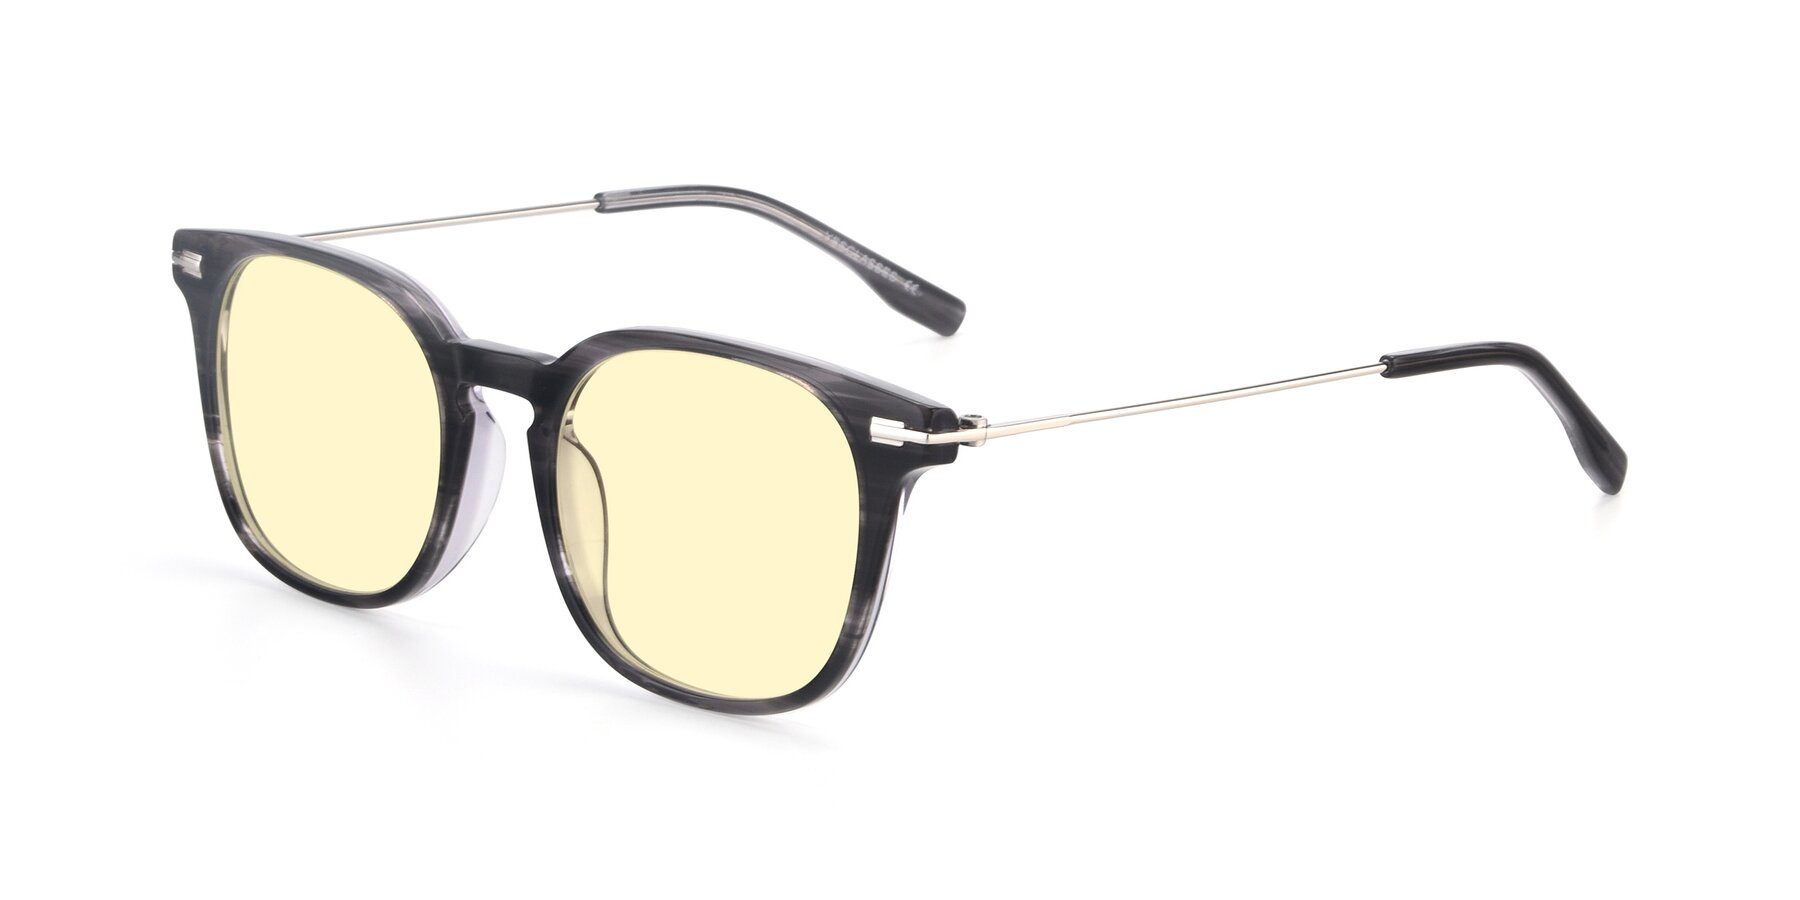 Angle of 17711 in Grey with Light Yellow Tinted Lenses